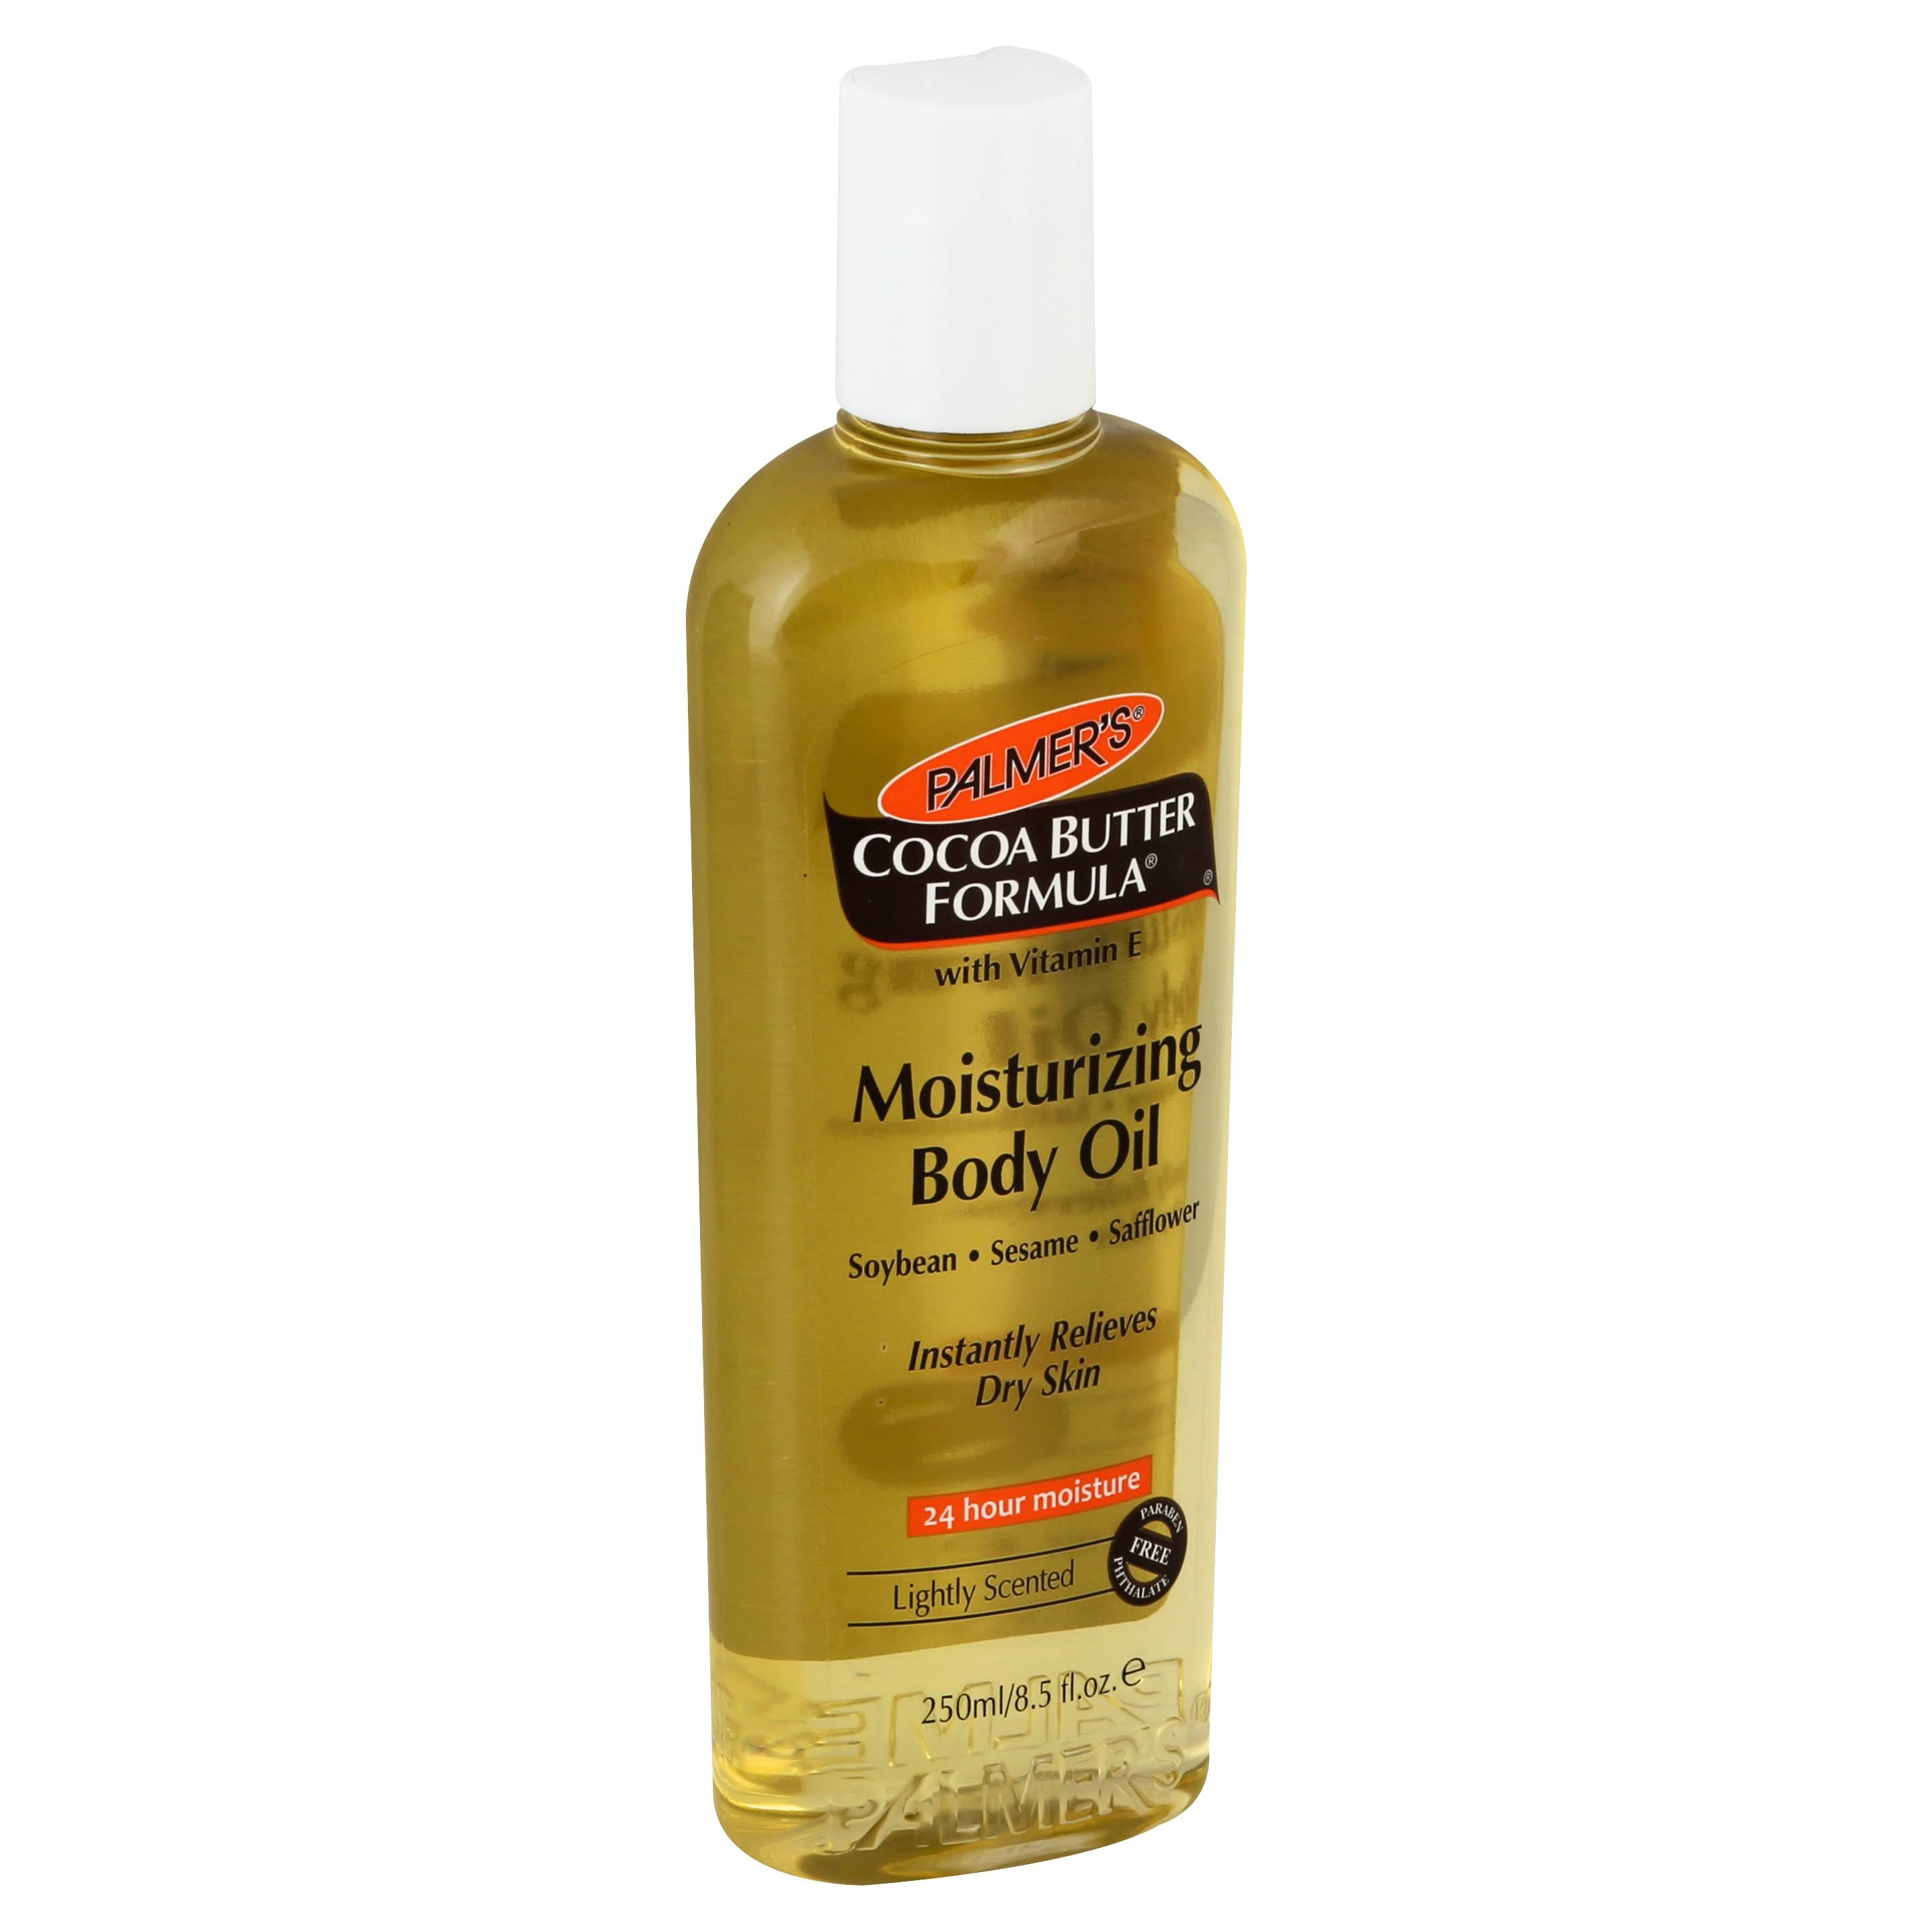 Palmers Cocoa Butter Formula Body Oil, Moisturizing, Lightly Scented - 8.5 fl oz